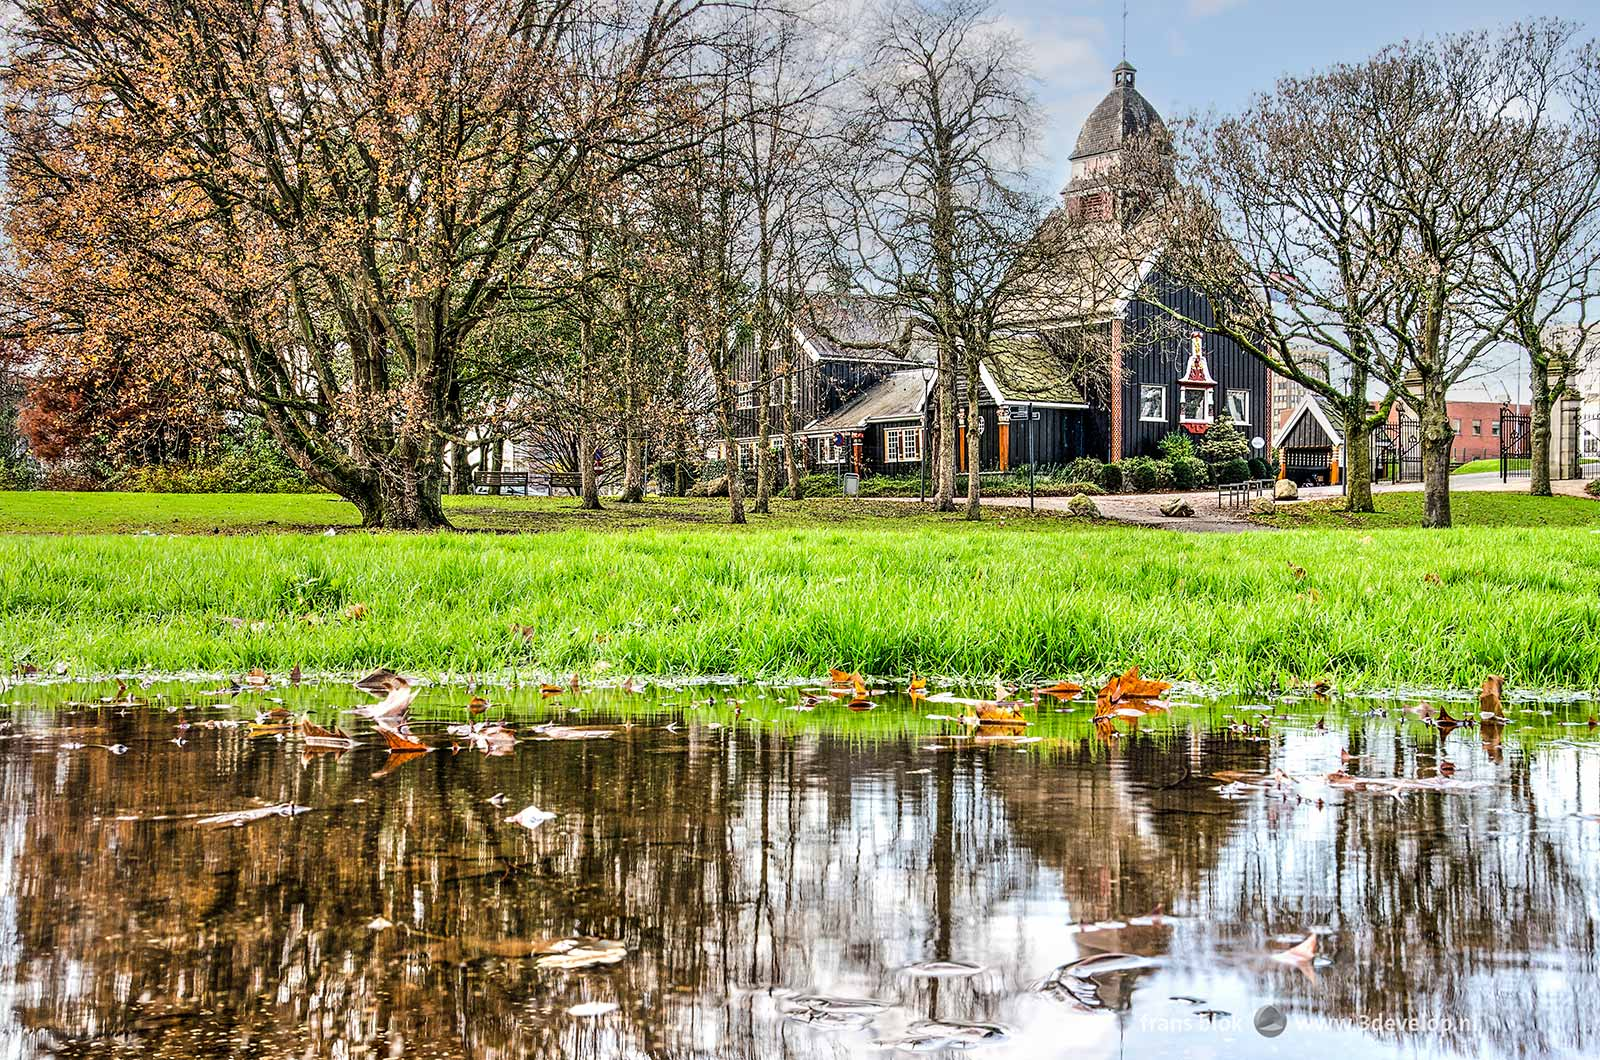 The Park in Rotterdam near the Norwegian Seaman's Church at the end of autumn, with large puddles and almost bare trees